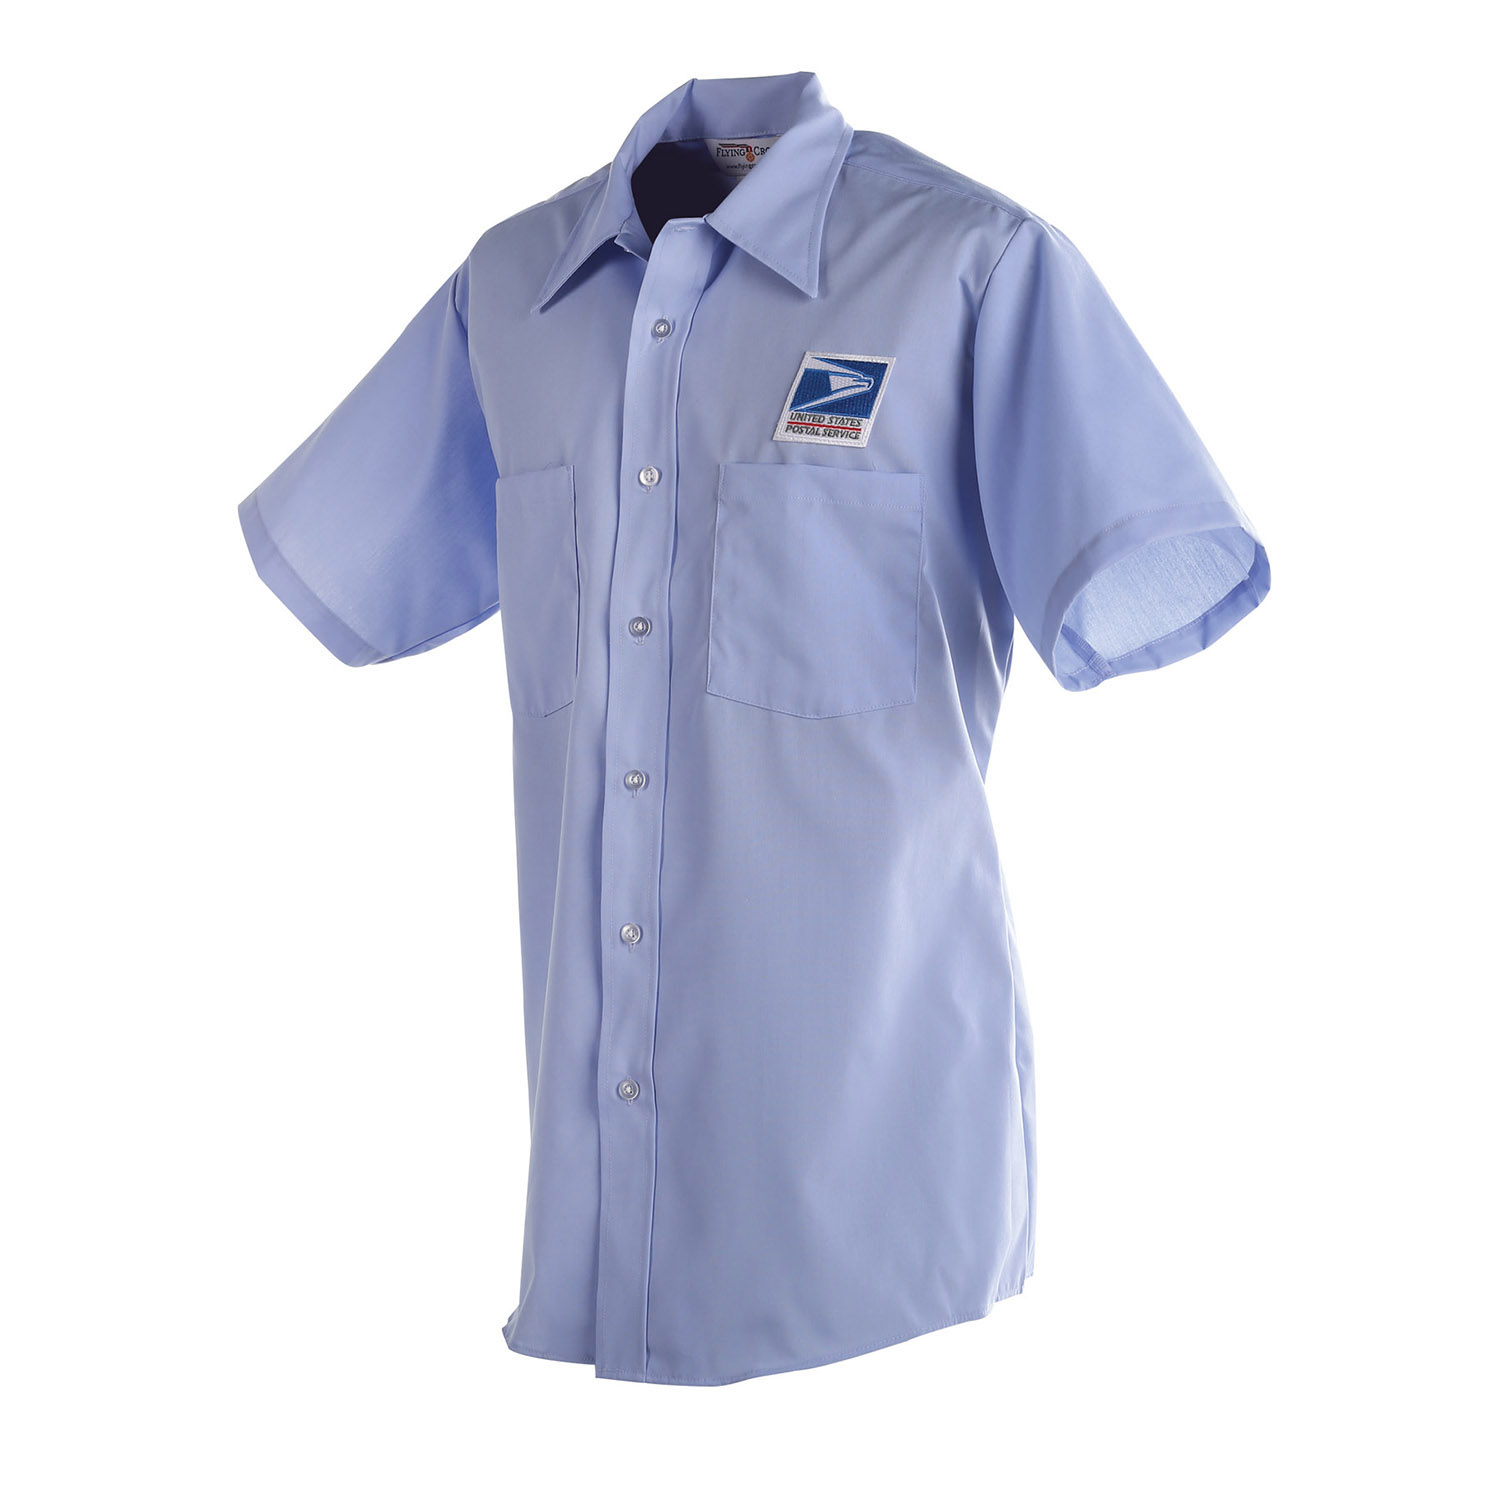 postal uniform shirt mens short sleeve for letter carriers and motor vehicle service operators px101